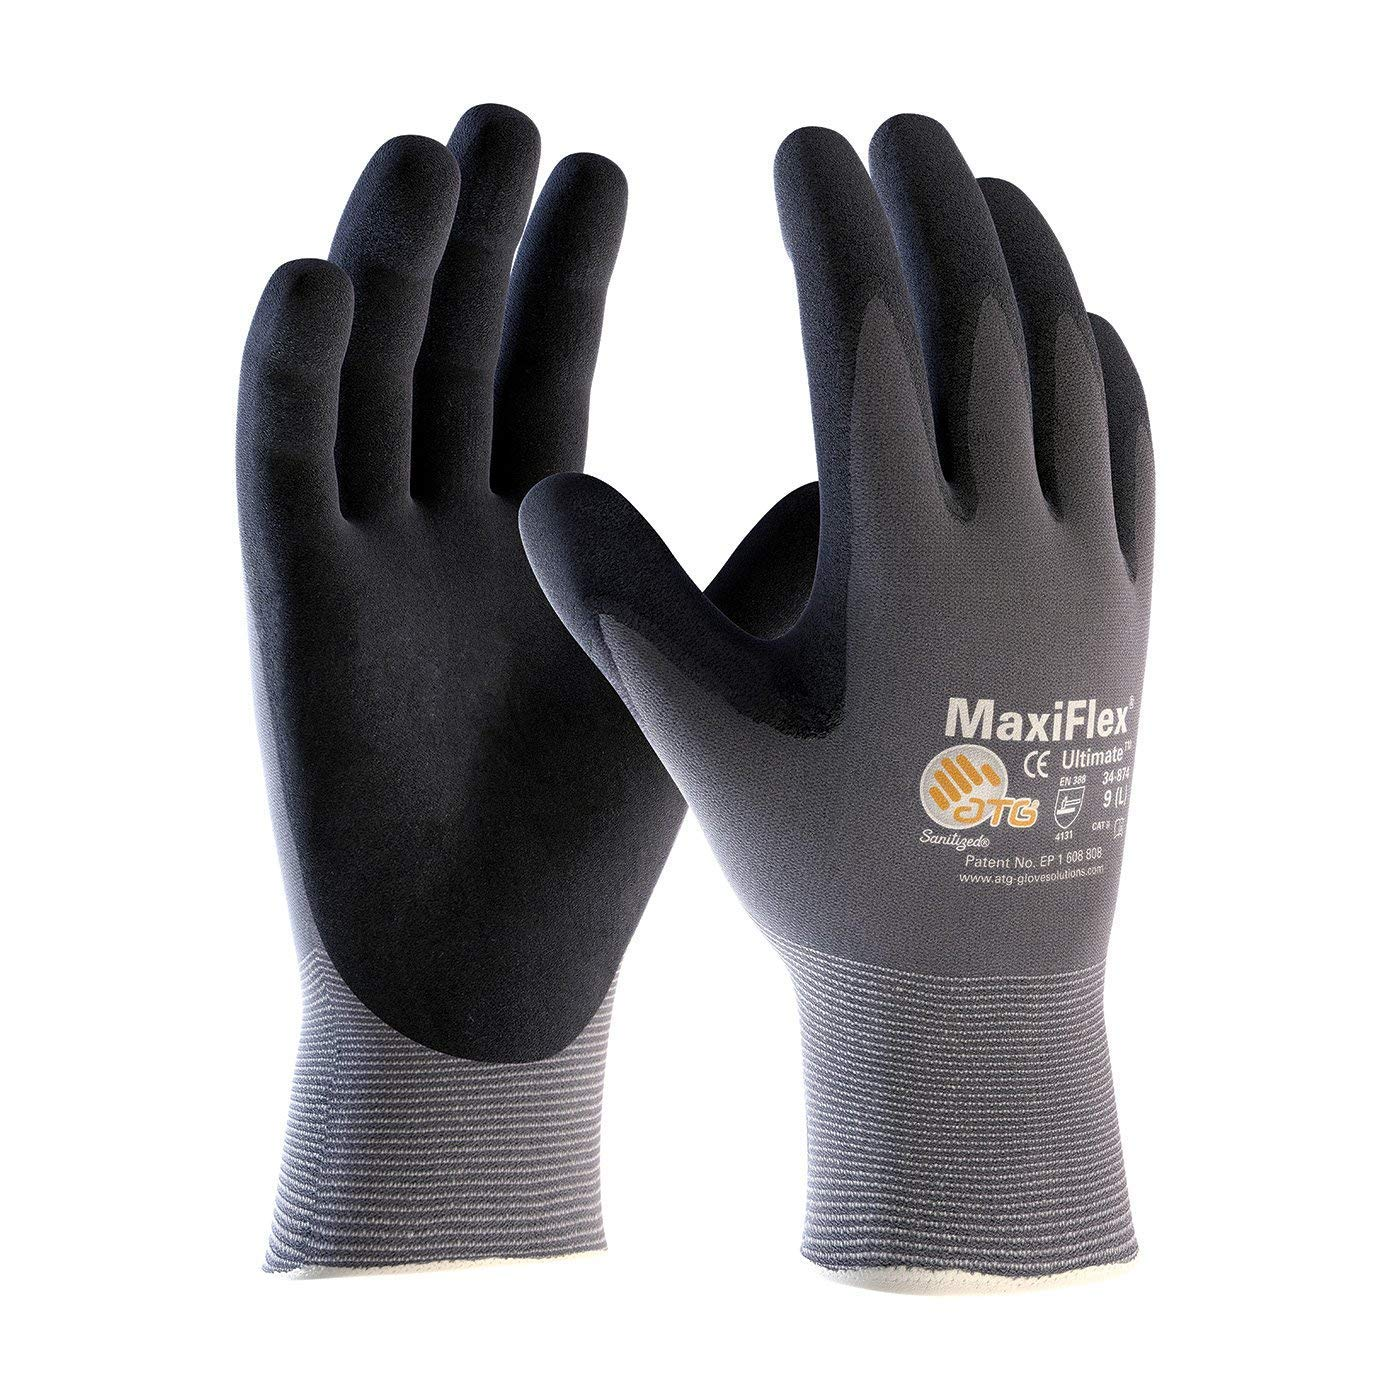 ATG MaxiFlex 34-874/XXL Ultimate - Nylon, Micro-Foam Nitrile Grip Gloves - Black/Gray - XX-Large - 24 Pair Per Pack